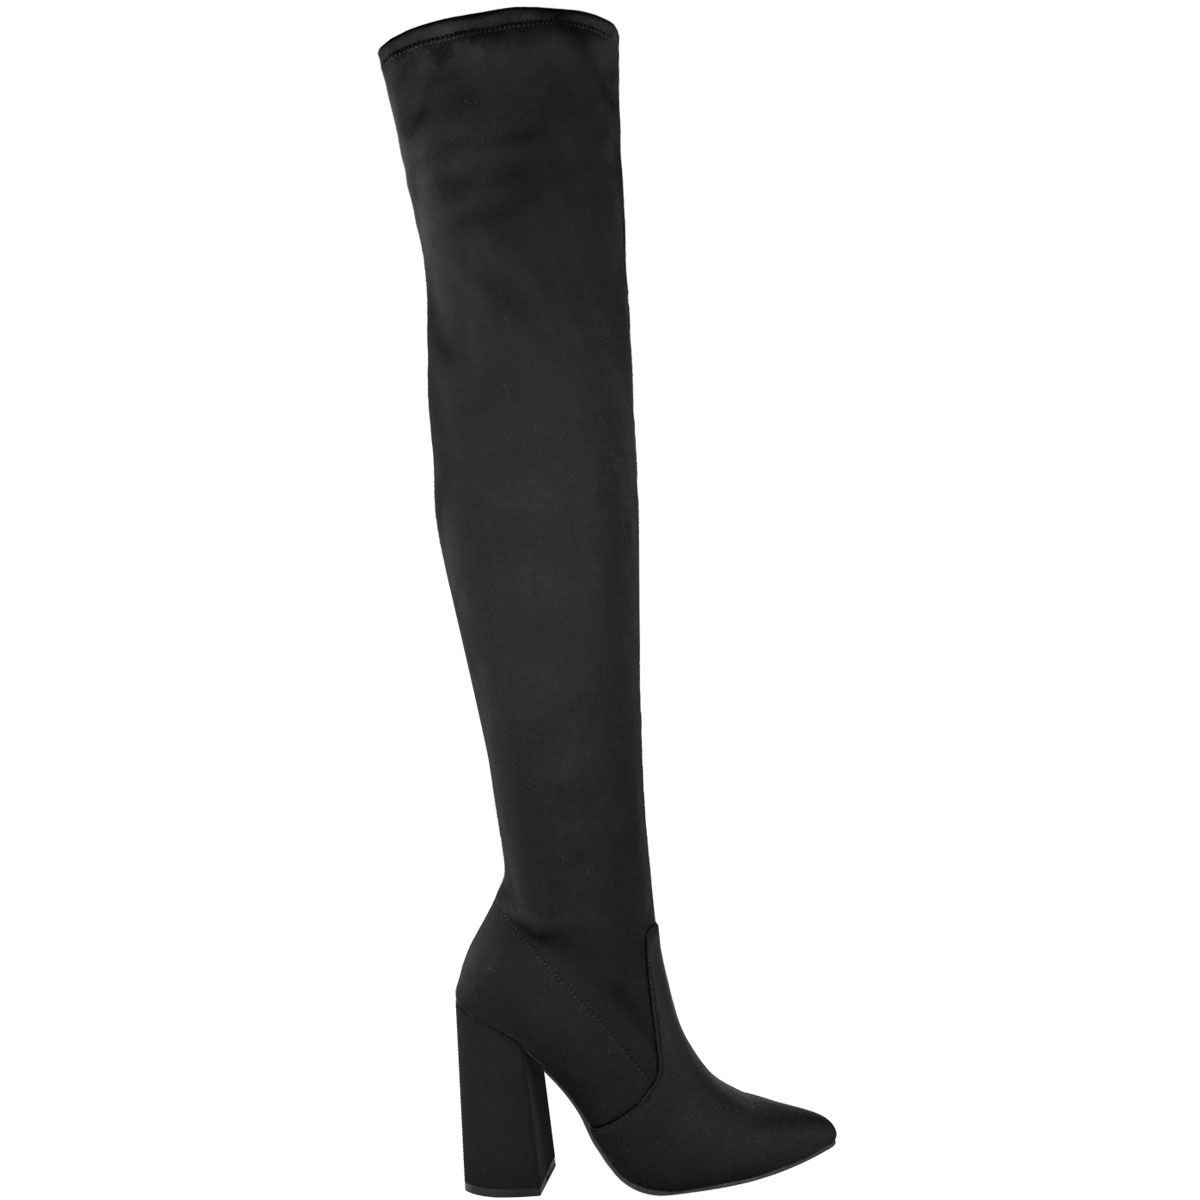 Womens-Ladies-Thigh-High-Boots-Lycra-Over-The-Knee-Pointy-Block-High-Heels-Size Indexbild 4